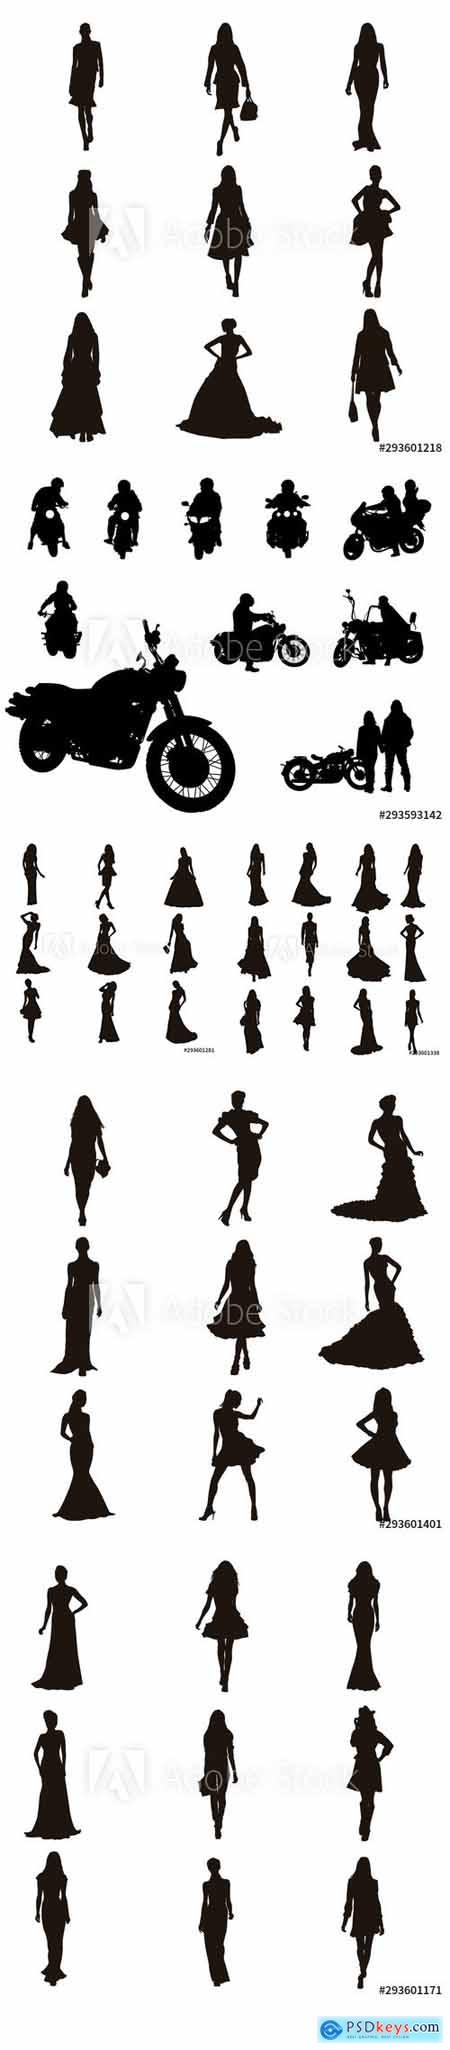 Vector Set - Fashion Model Silhouettes and Motor Bike Background